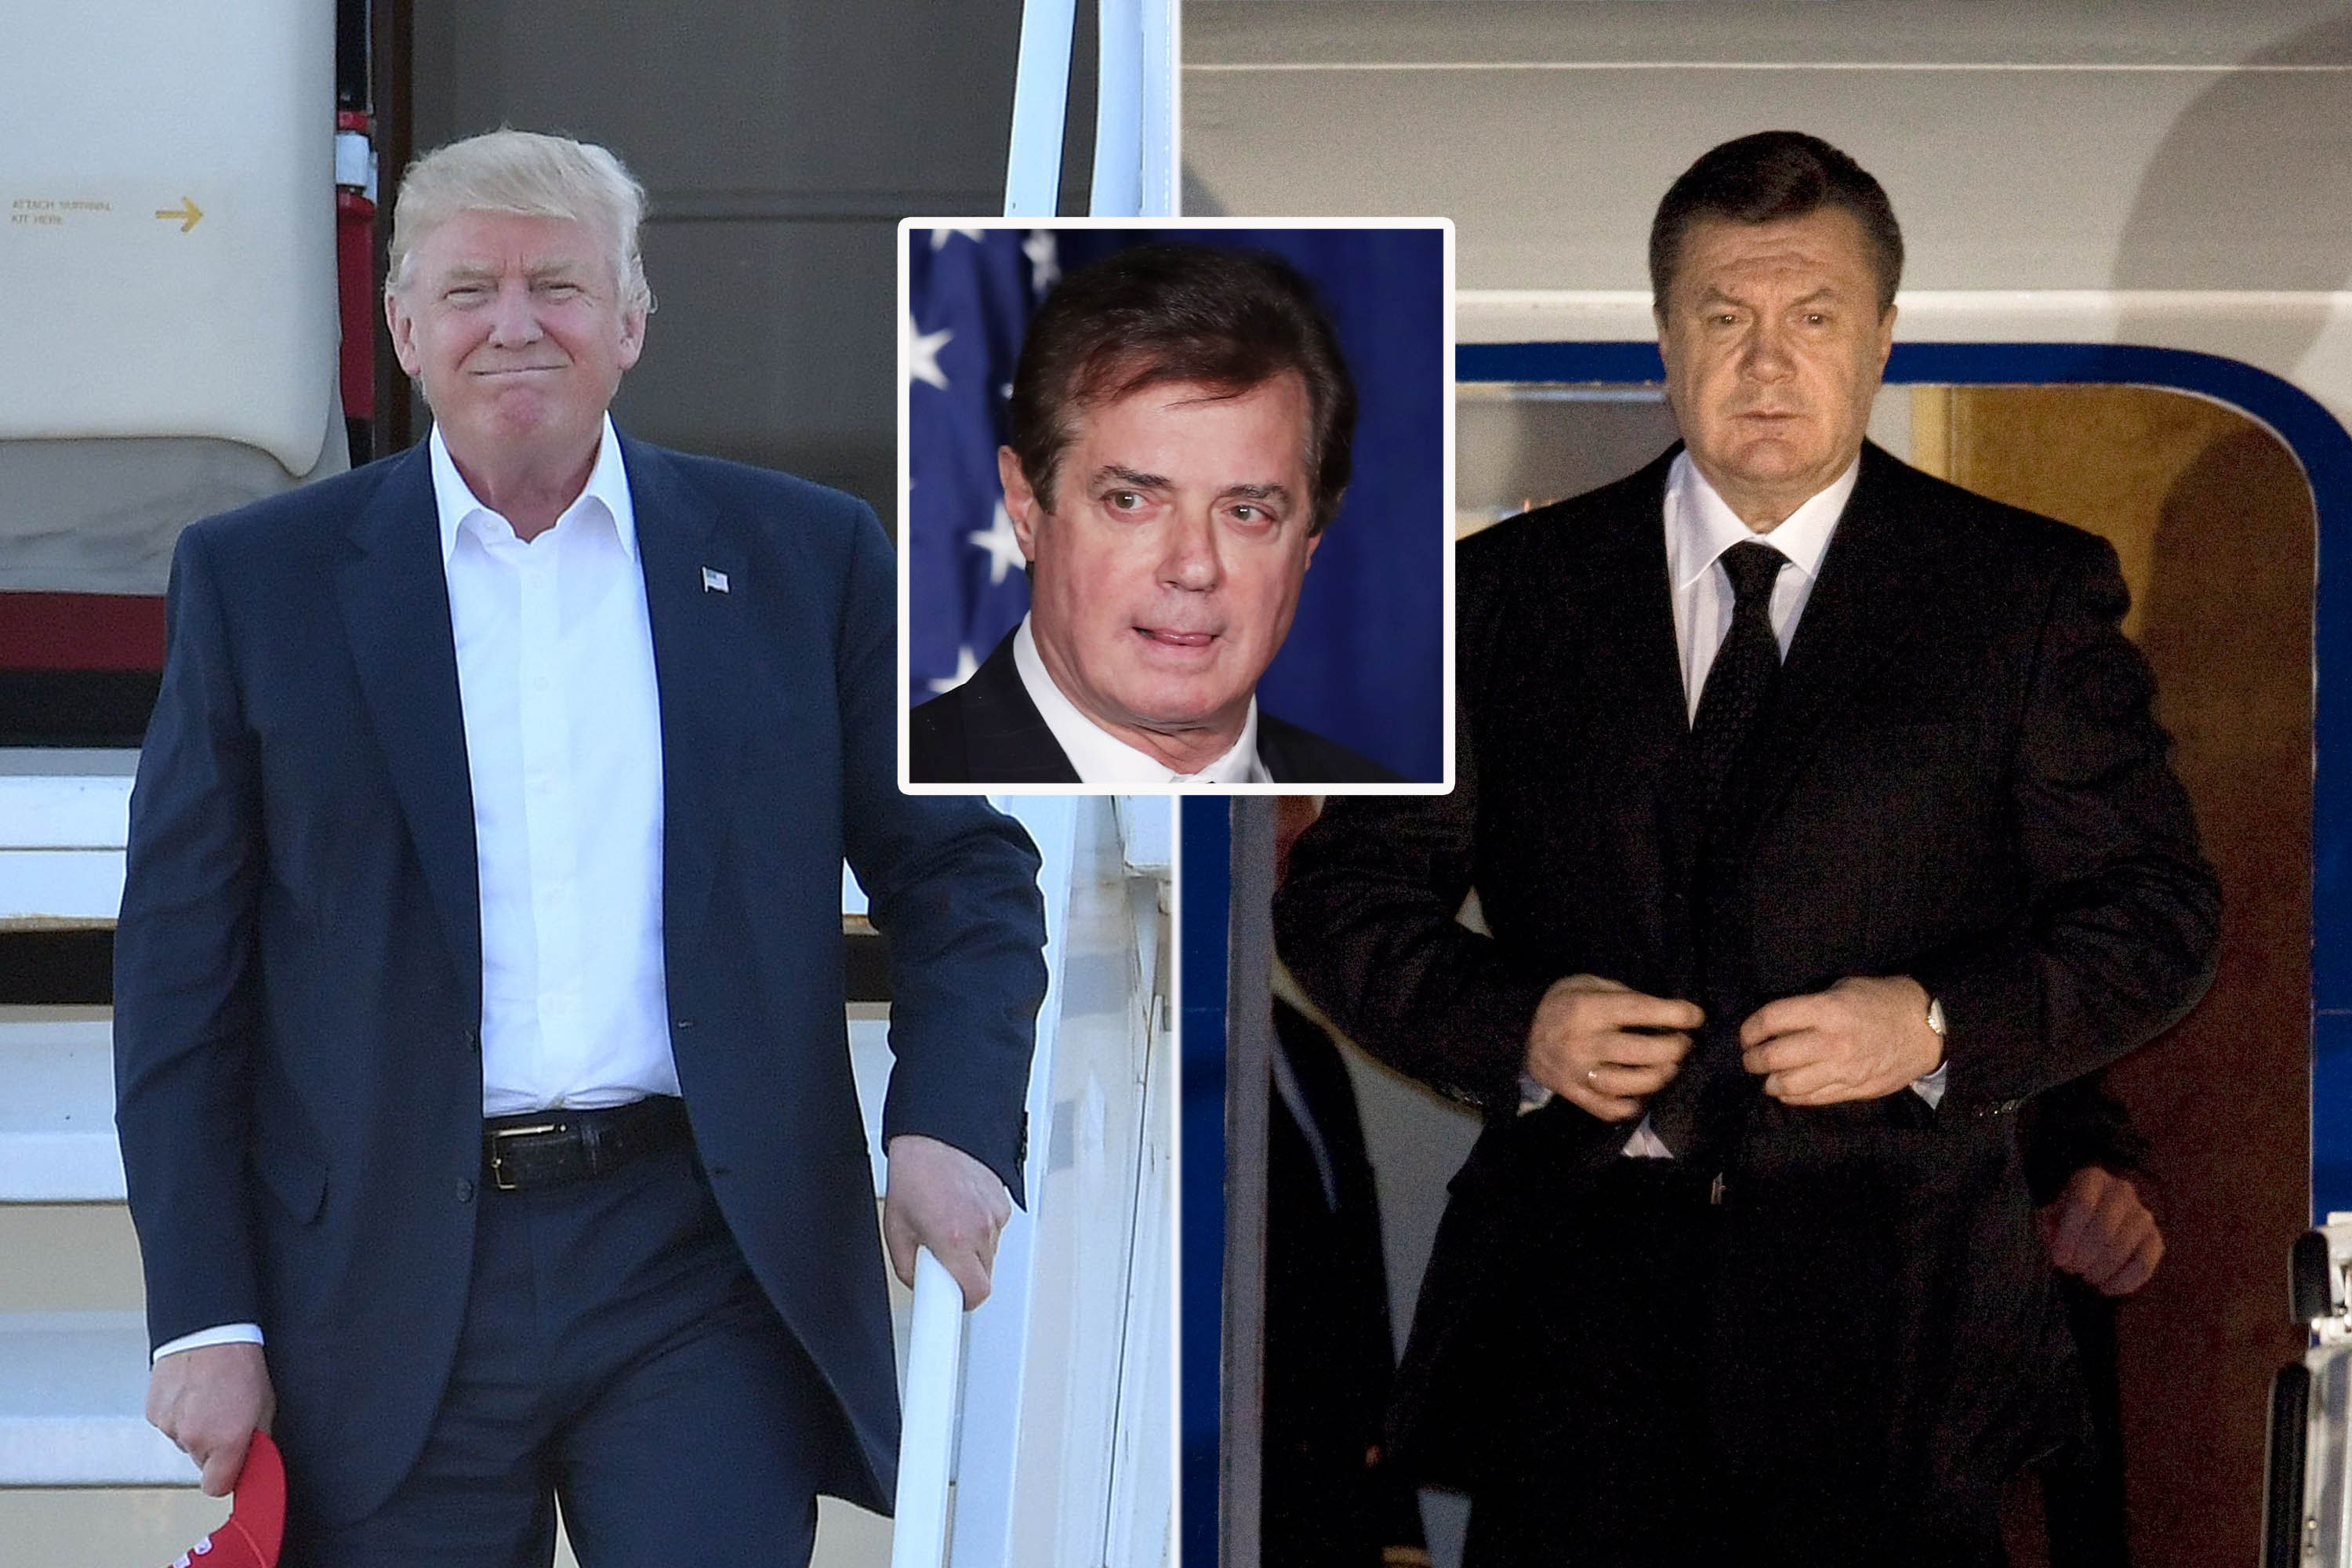 Manafort just suffered his most devastating blow in court yet in bombshell decision